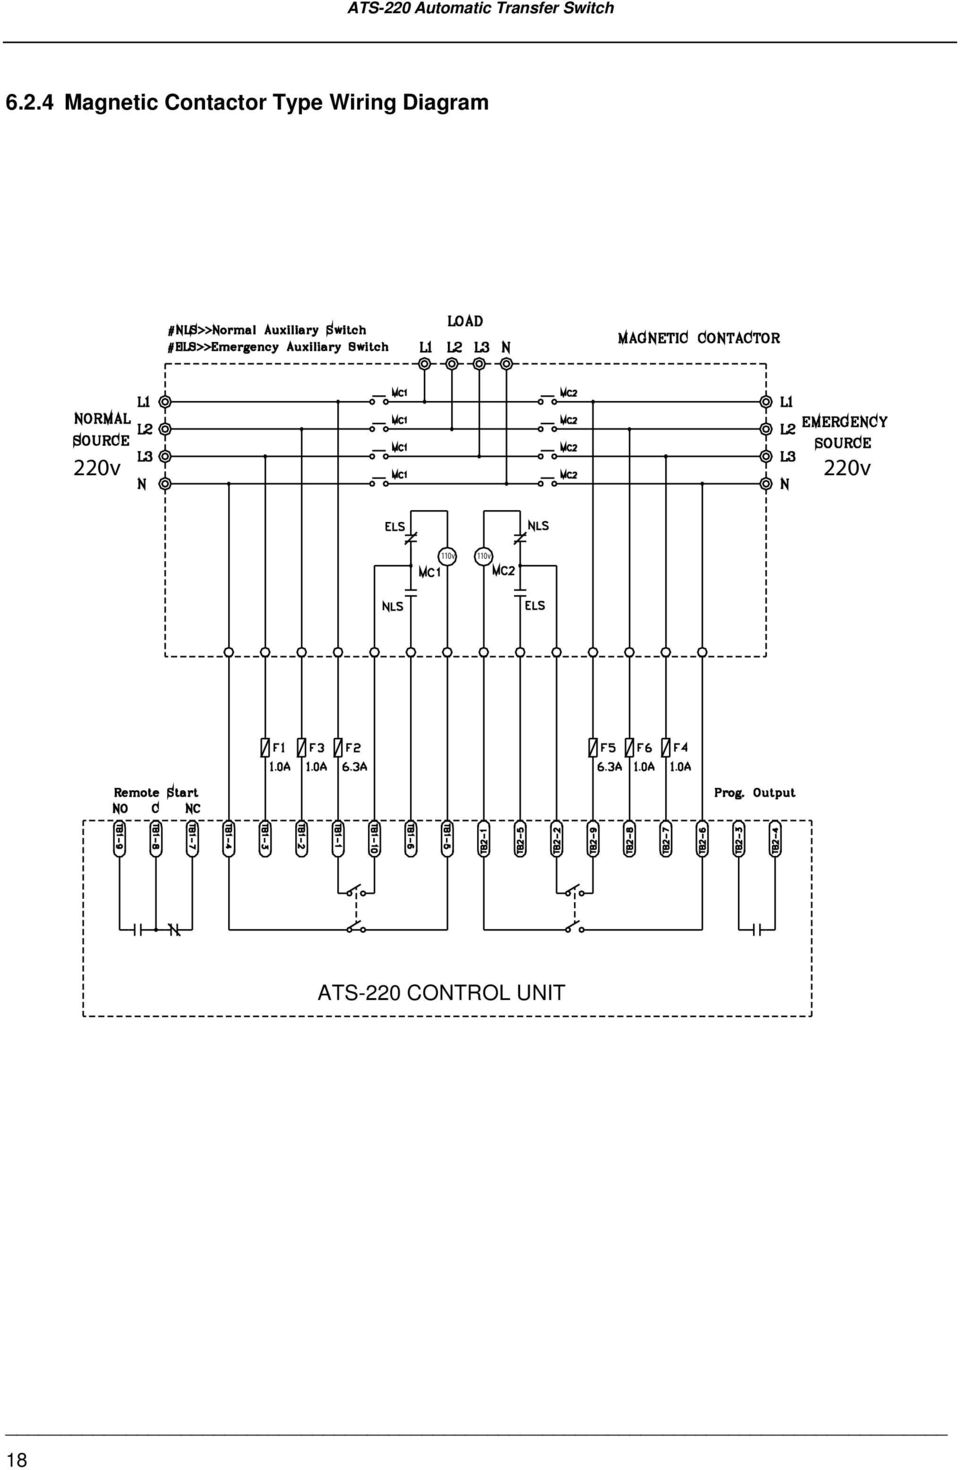 automatic transfer switch control unit operator s manual pdf rh docplayer net